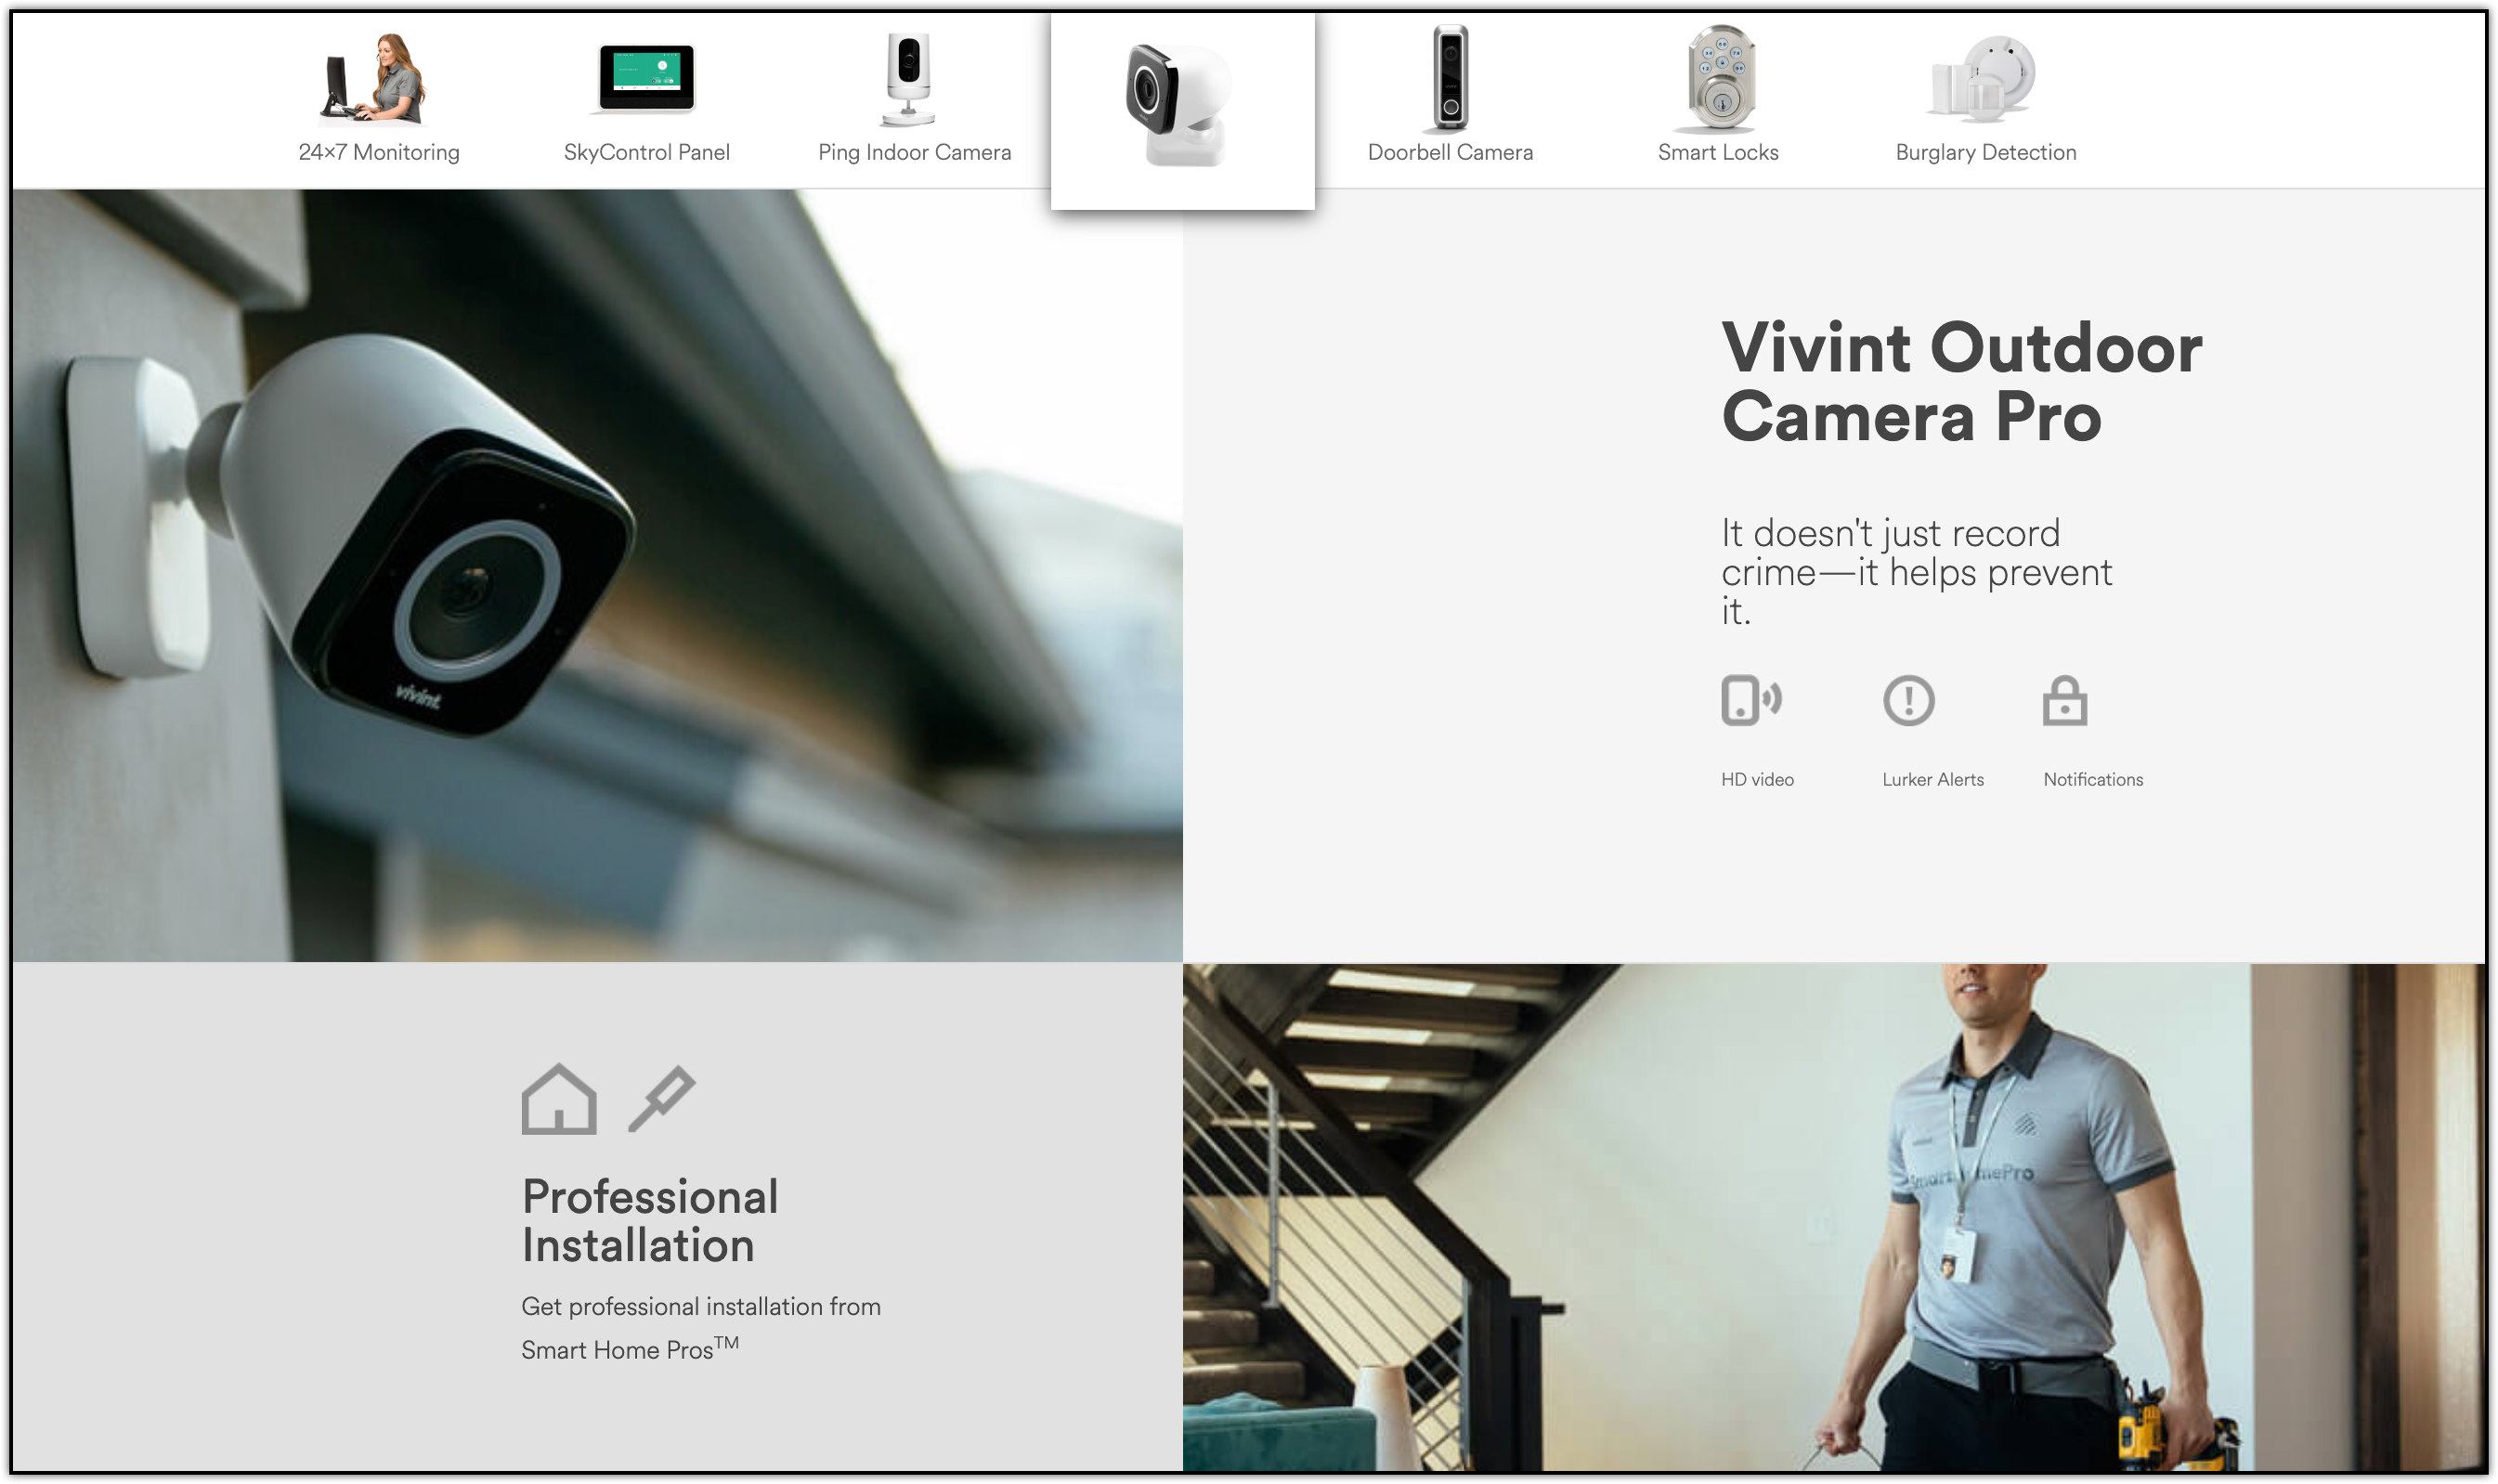 vivint outdoor security camera and professional installation